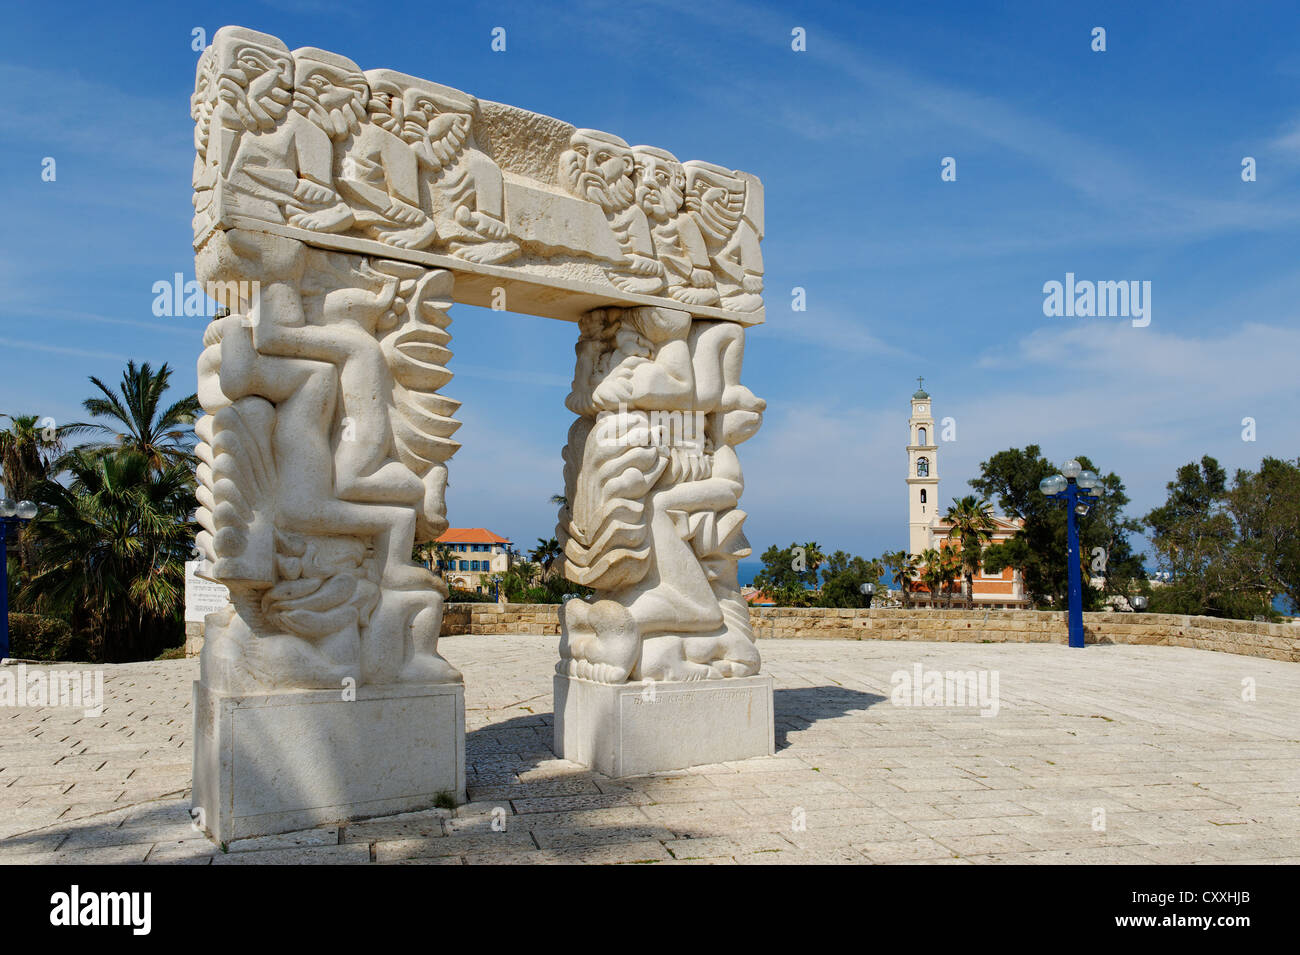 Statue of Faith with St. Peter Church, Jaffa, Tel Aviv, Israel, Middle East - Stock Image